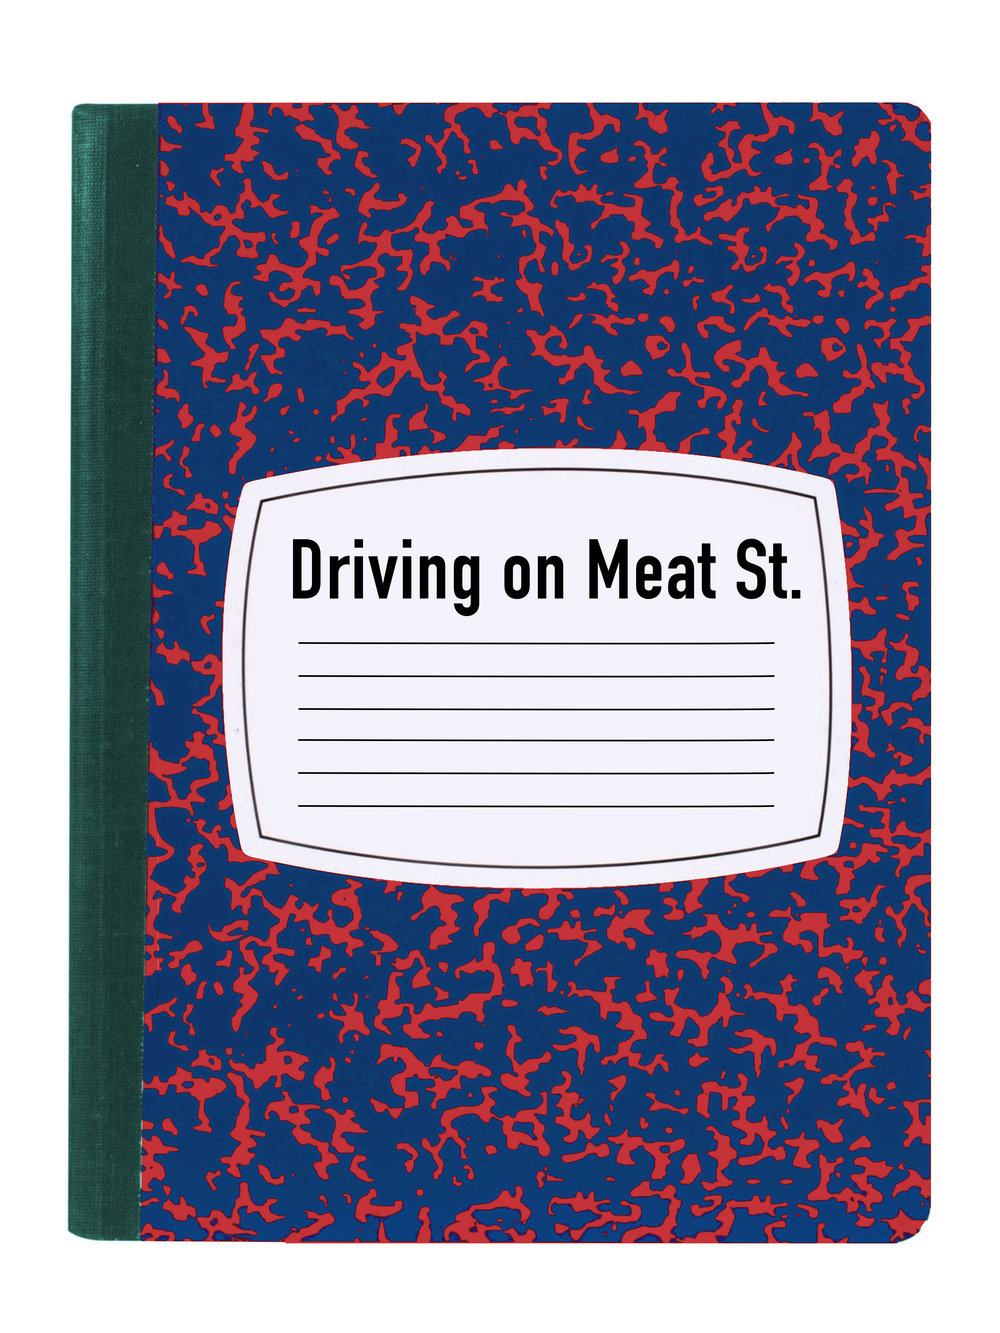 DRIVING ON MEAT ST.